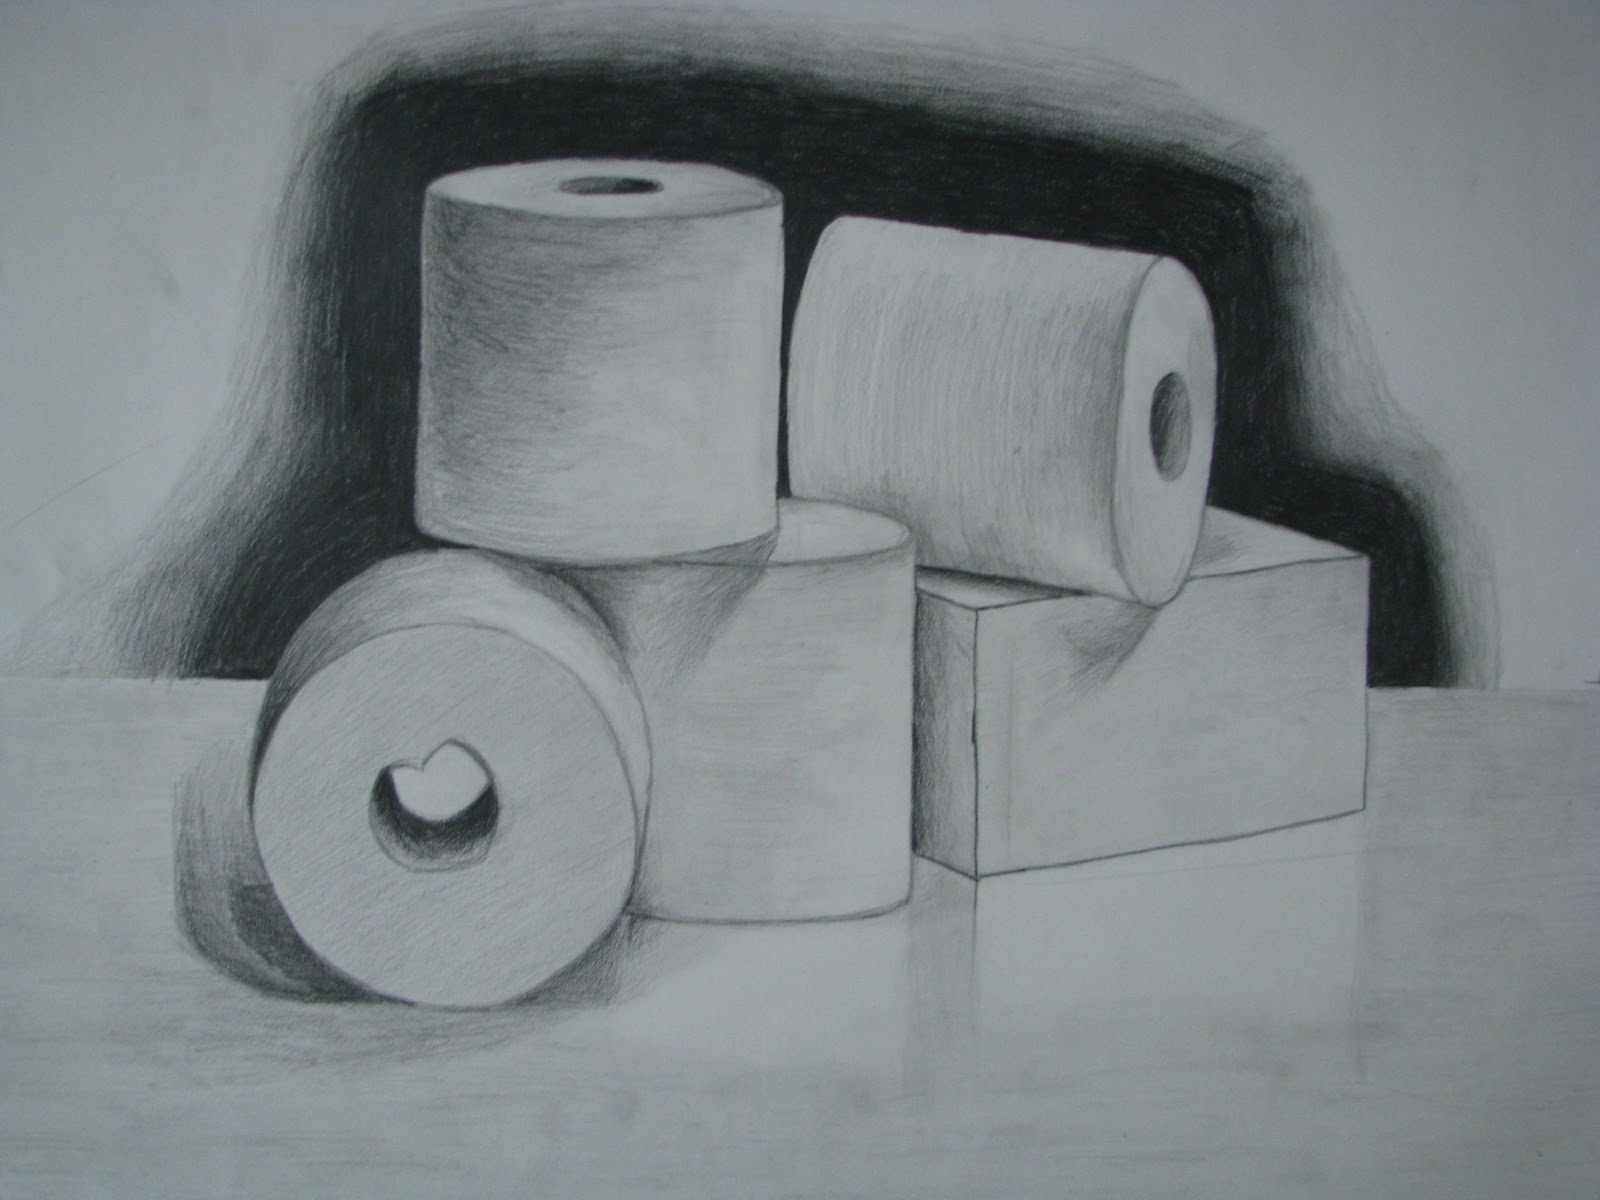 My Art: Sketch of Toilet Paper Rolls